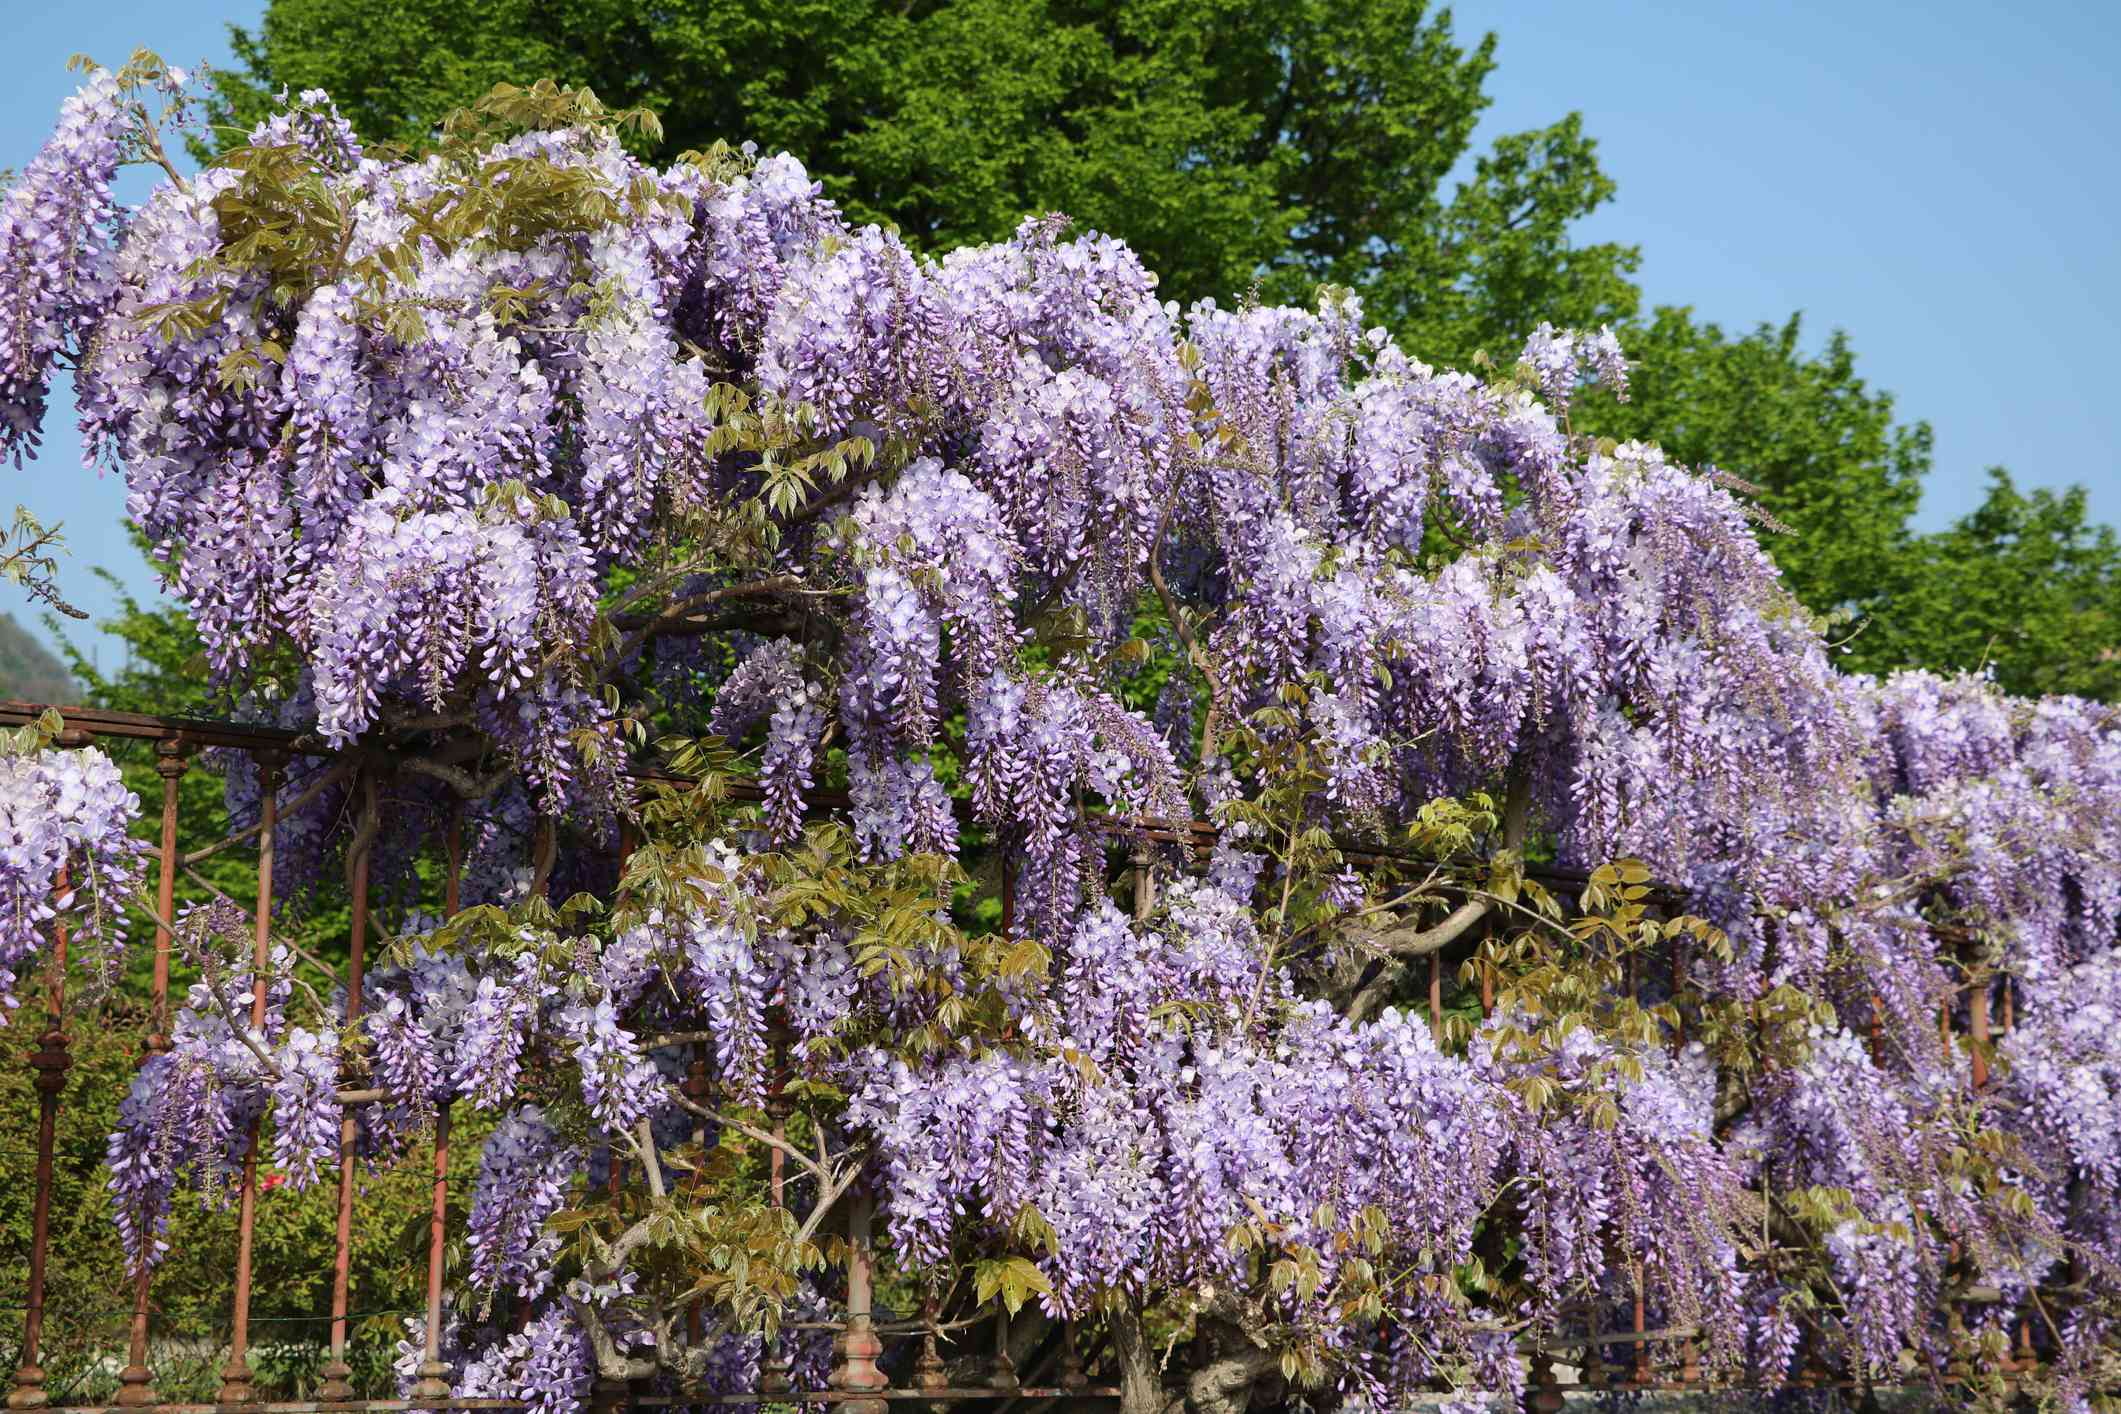 Texas Purple Japanese Wisteria in spring at Lake Como, Italy